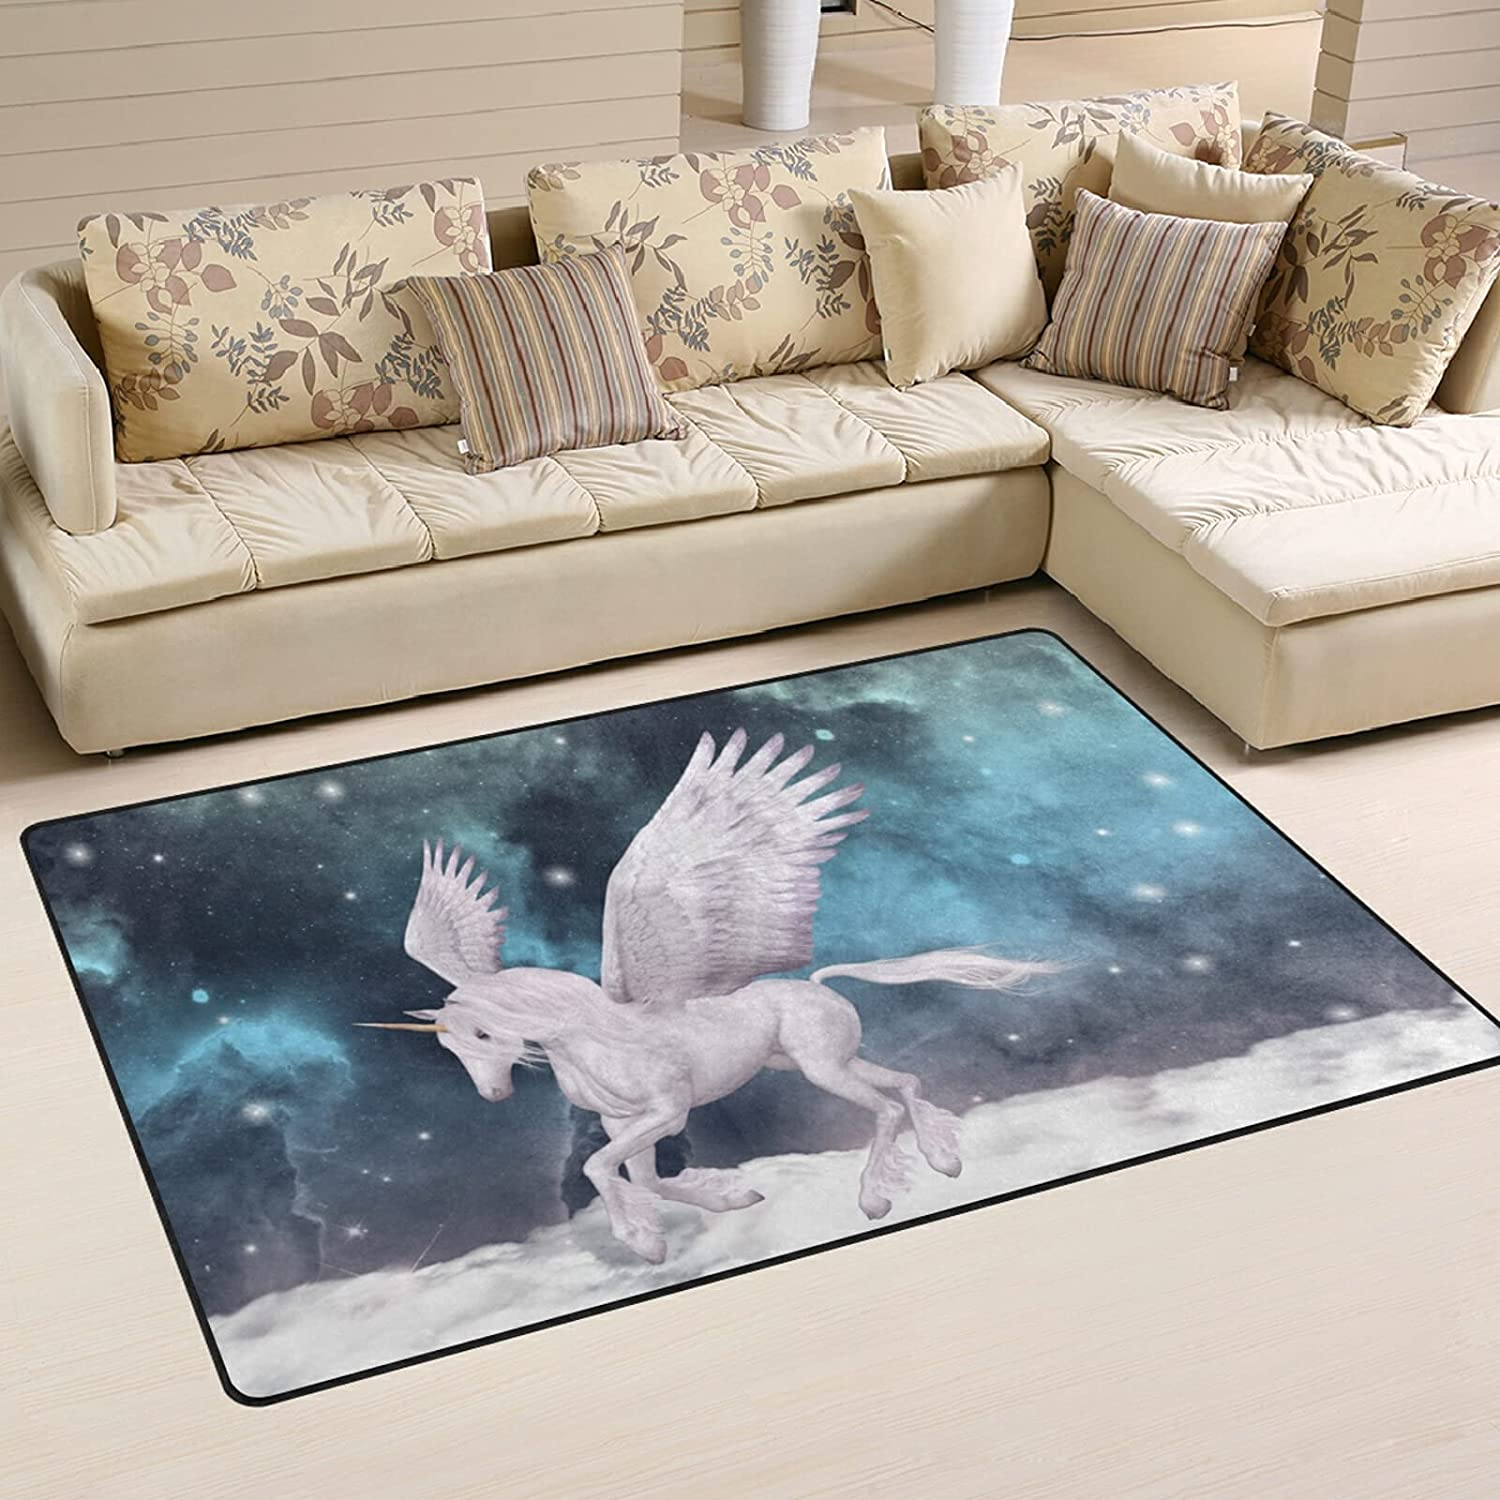 Wonderful Pegasus Large Soft online shopping Area Rugs Free shipping anywhere in the nation Rug Nursery Mat f Playmat